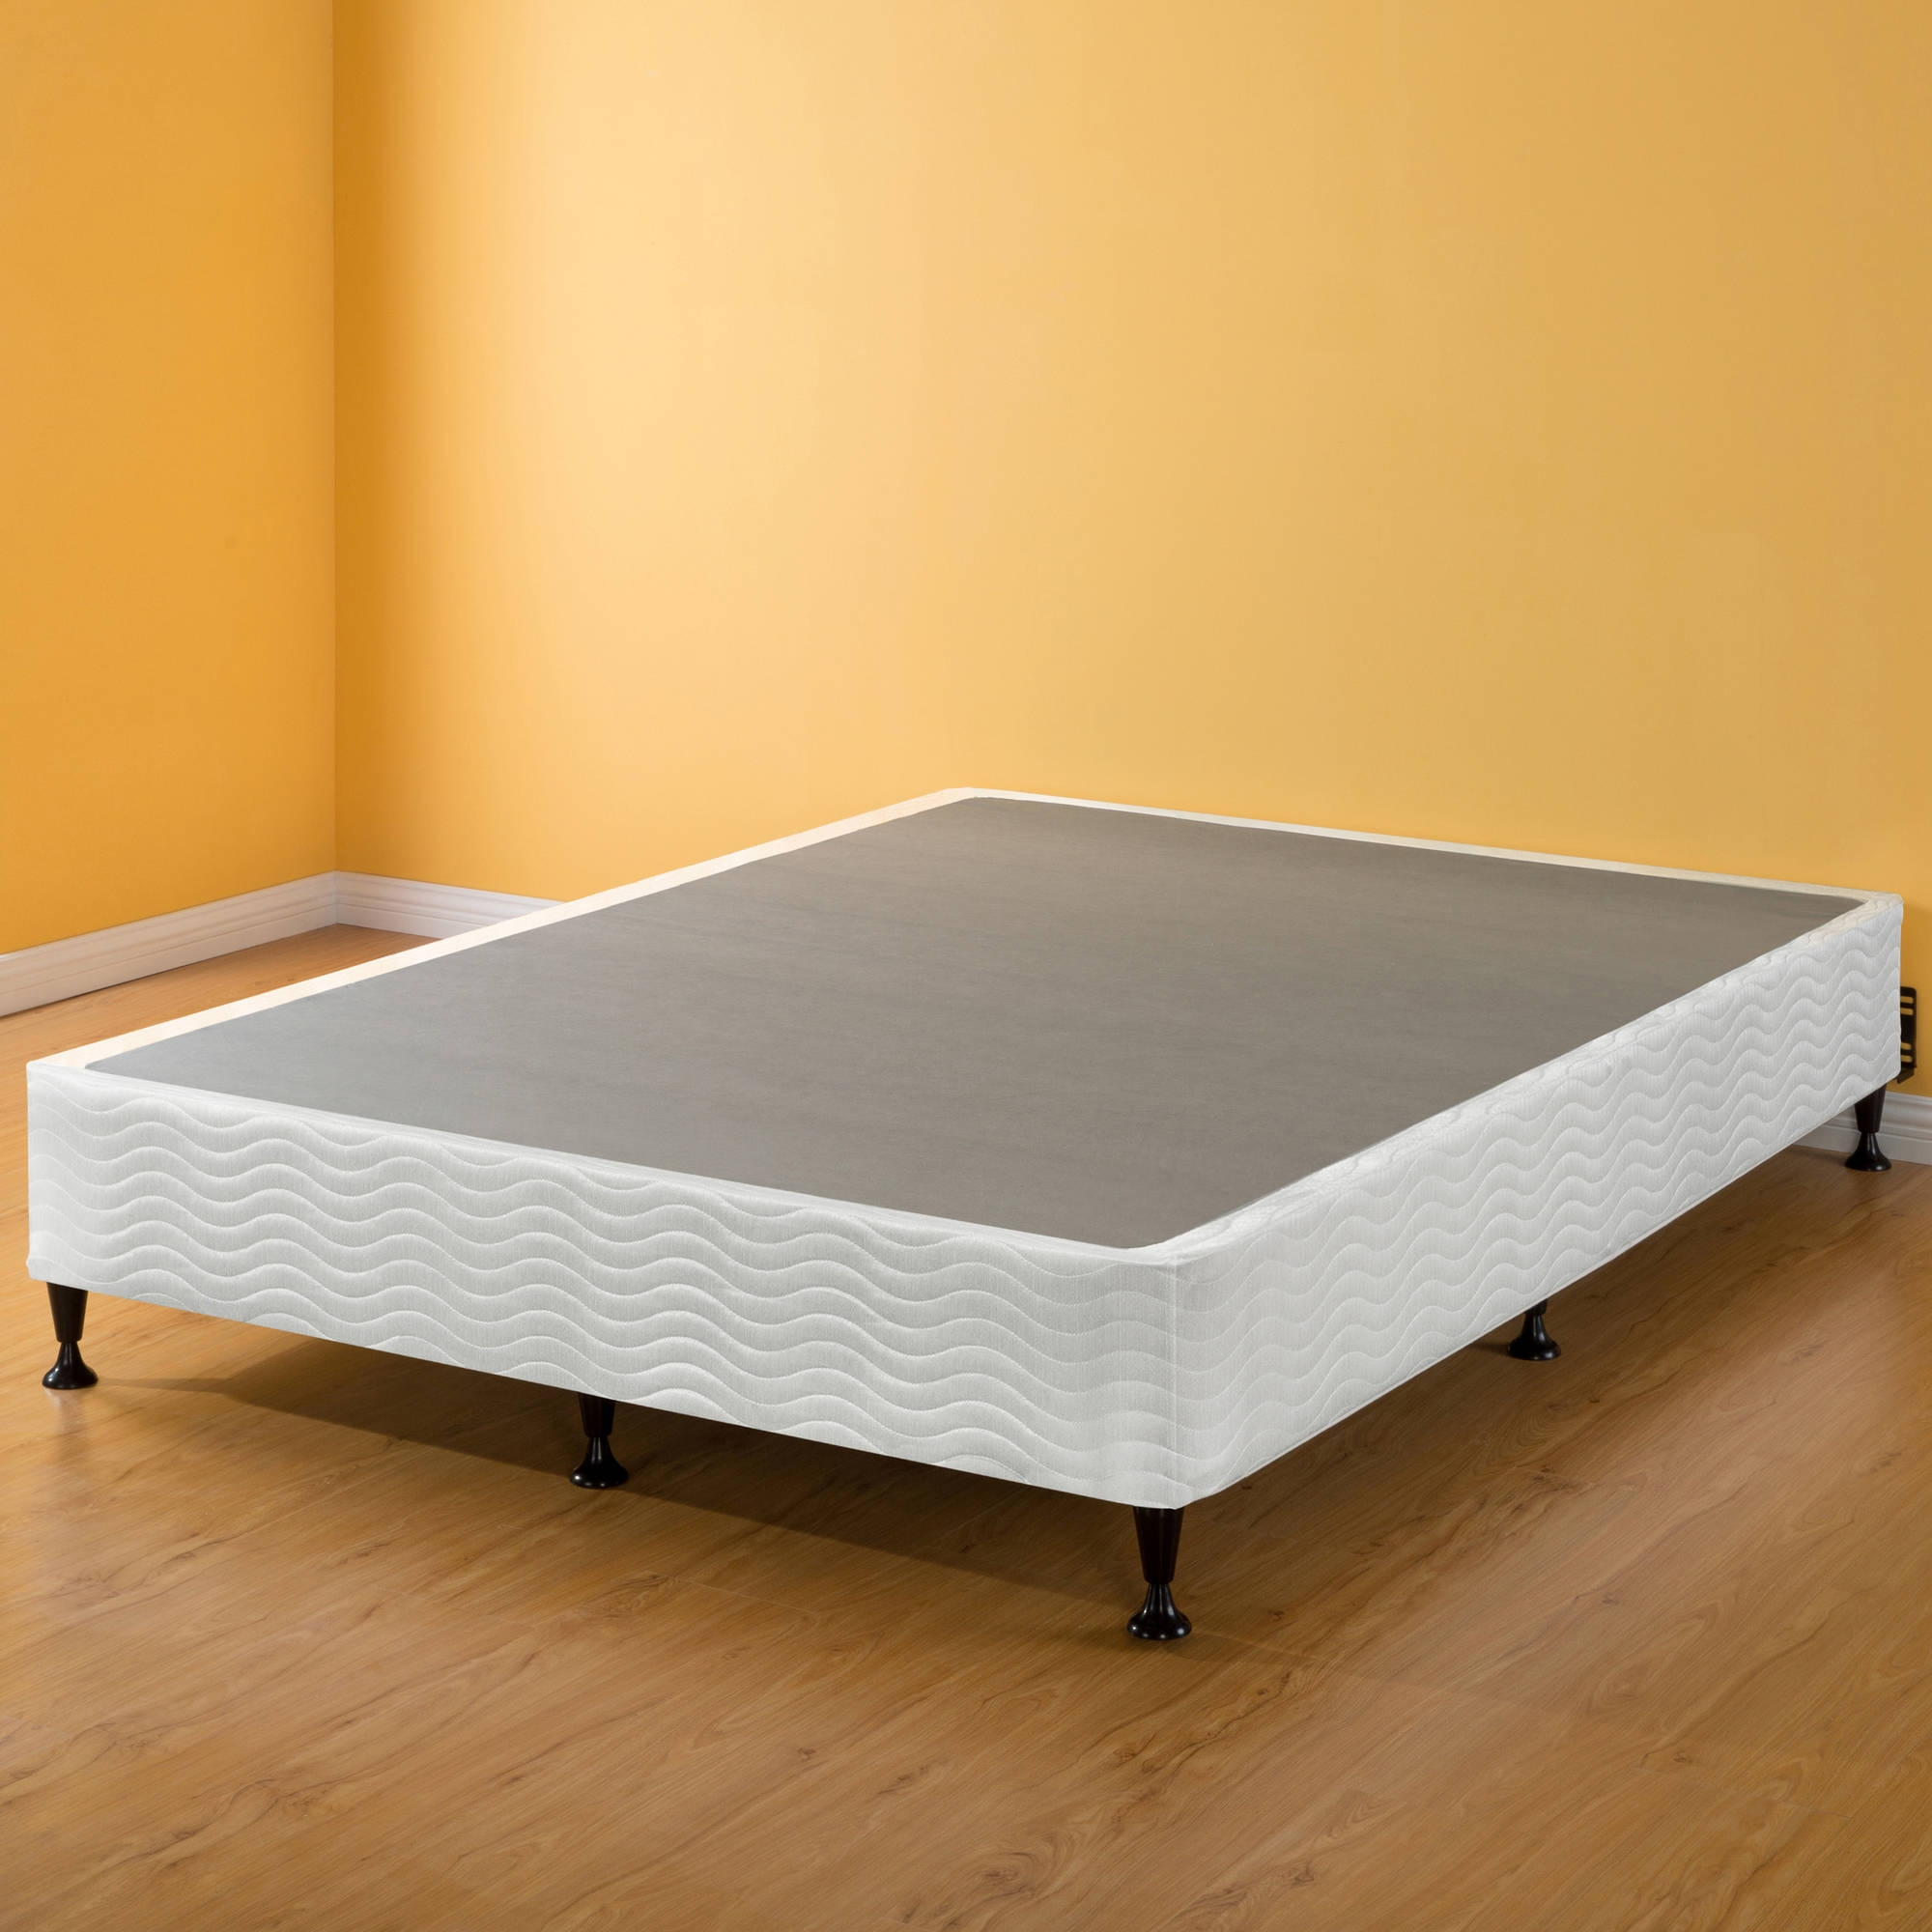 Queen Bed Frame Box Spring Mattress